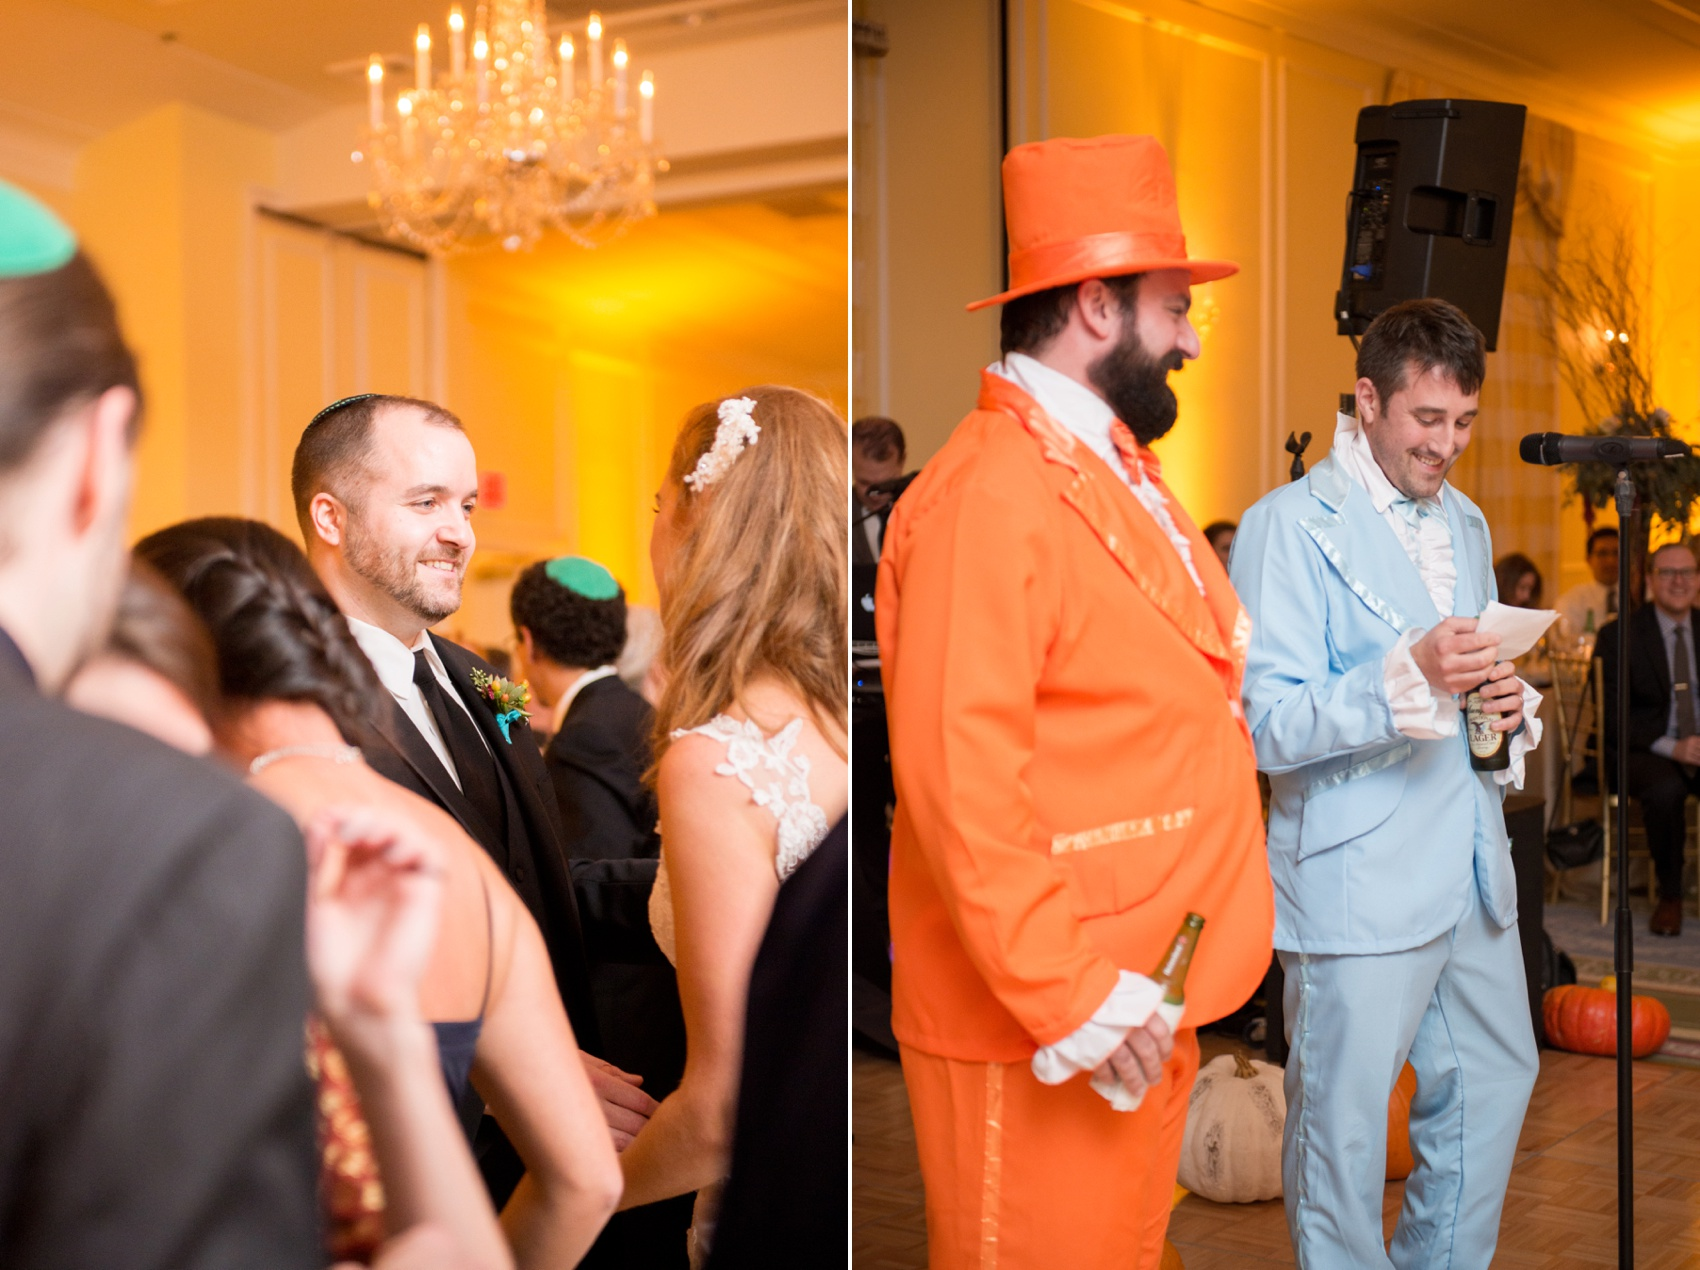 The Carolina Inn wedding photos by Mikkel Paige Photography, Raleigh wedding photographer. Dumb and Dumber inspired Halloween weekend costumes for the best man speeches.